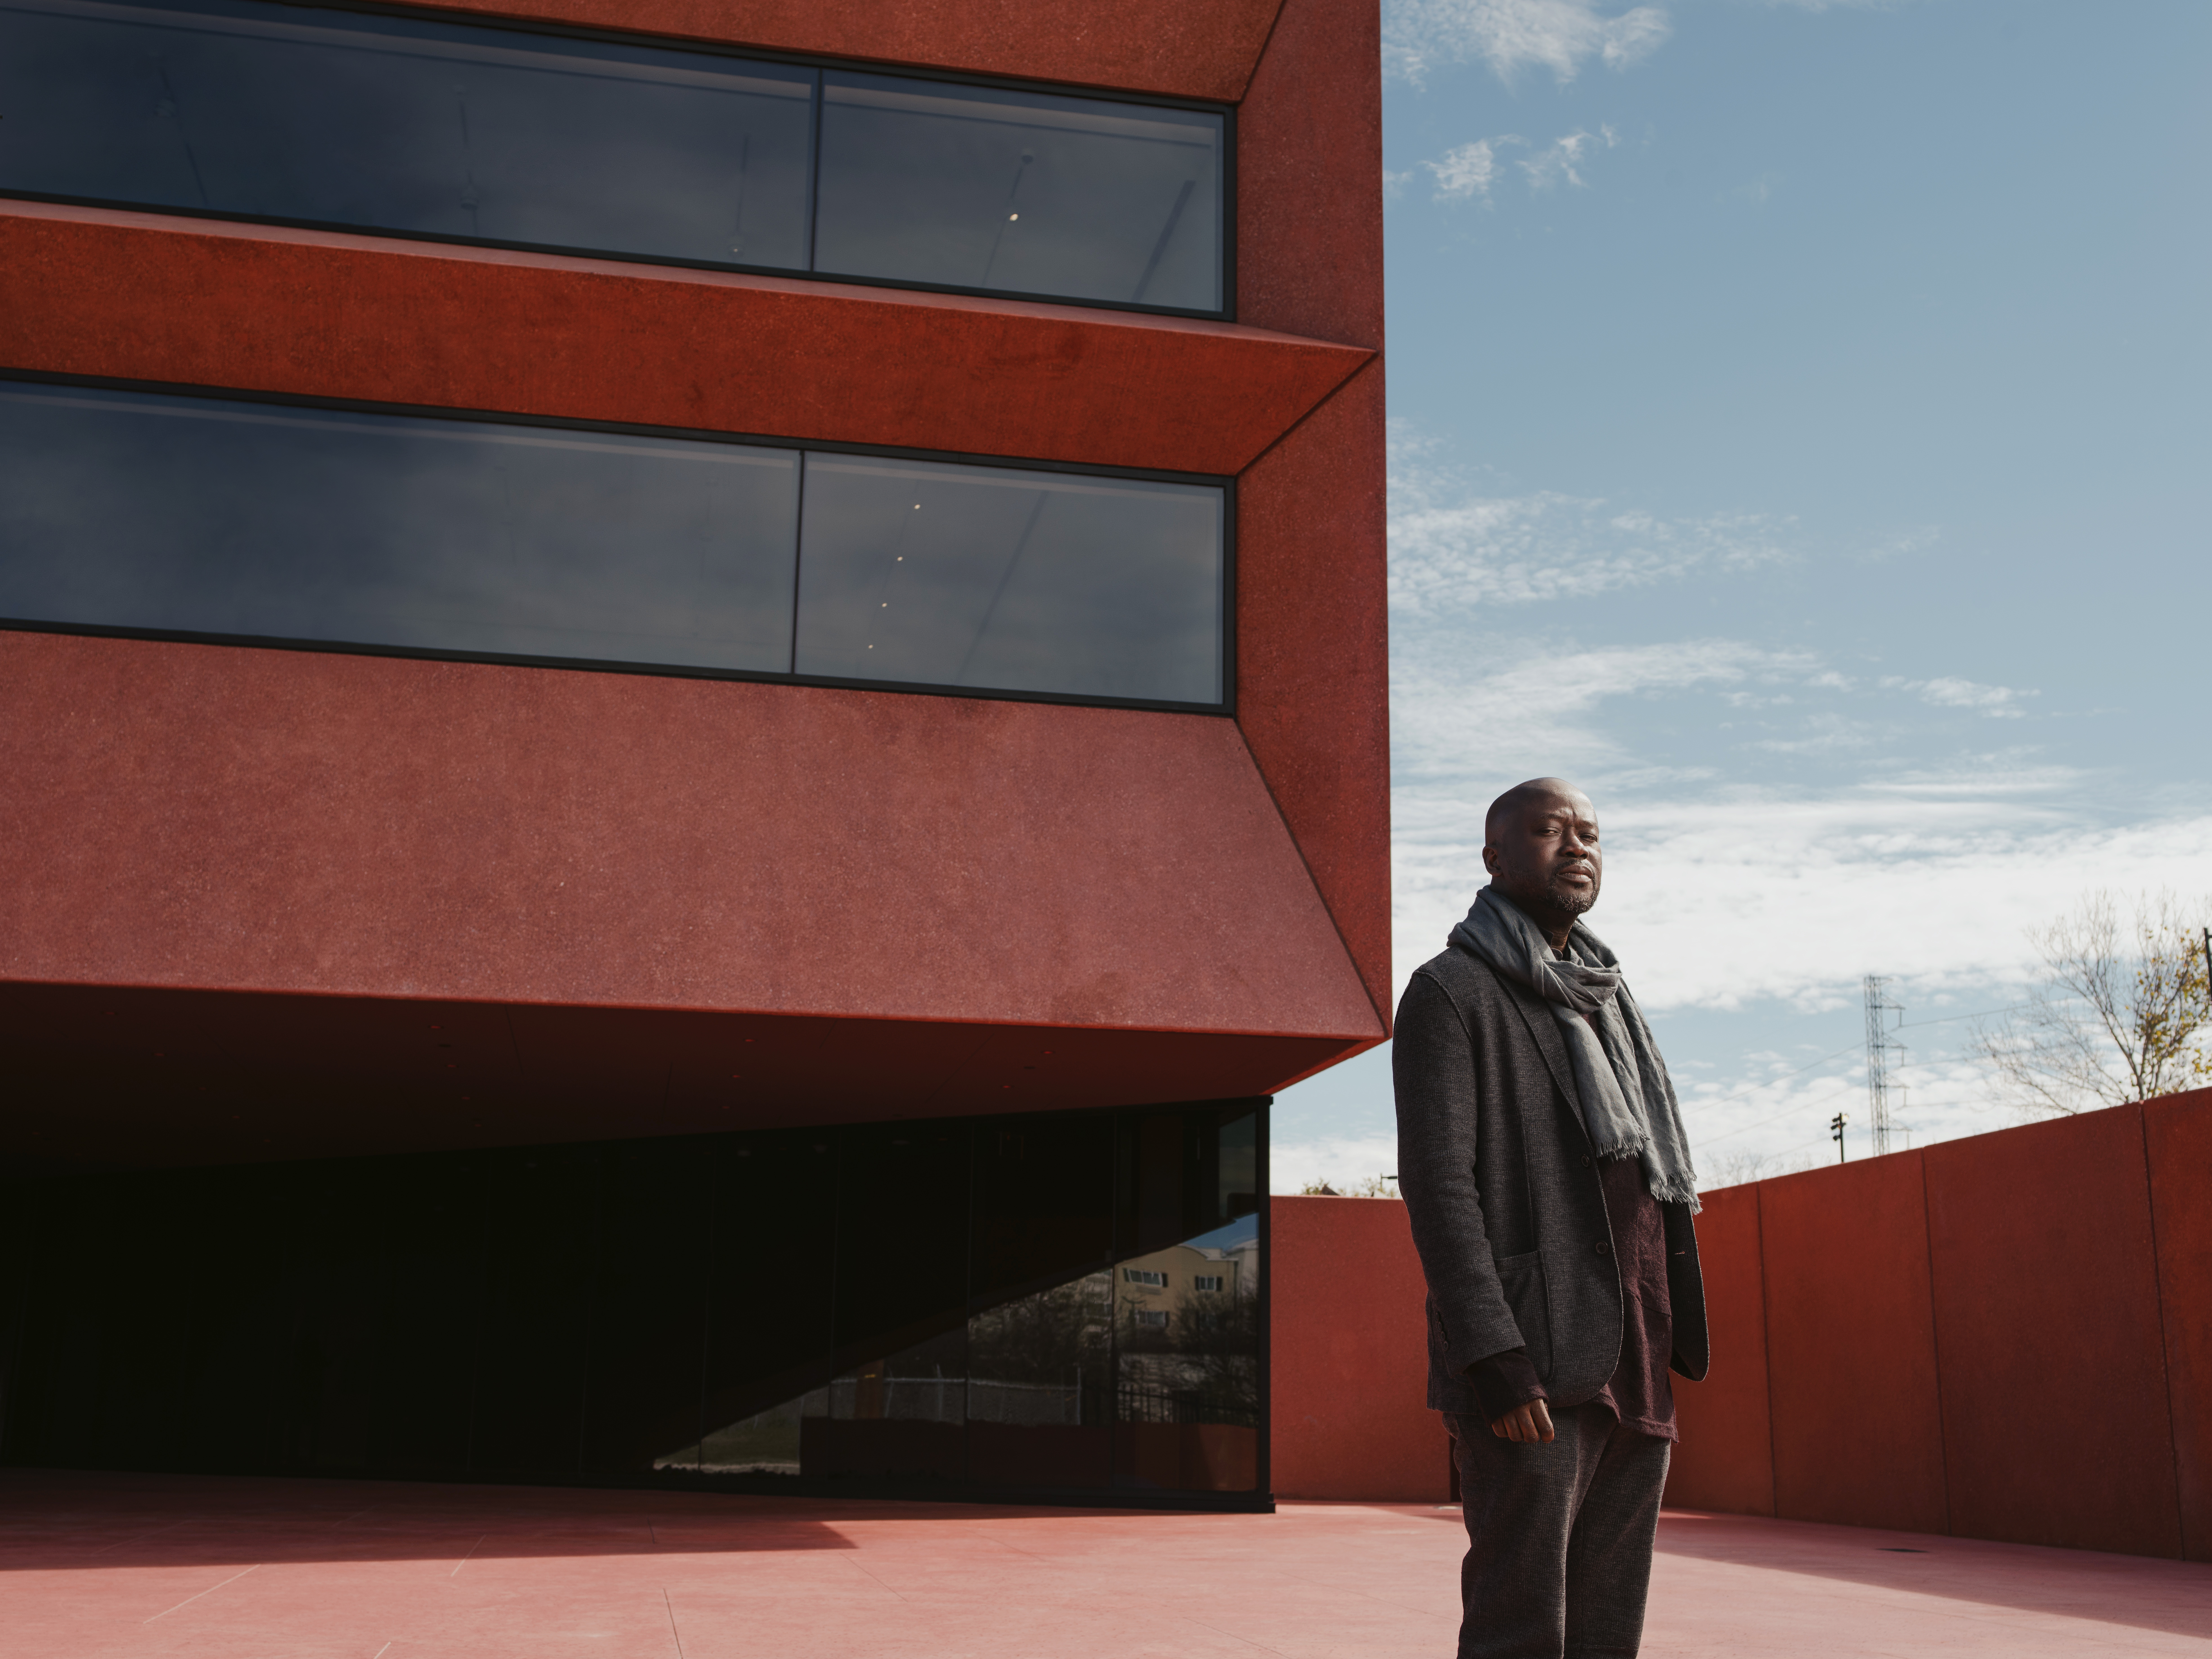 Sir David Adjaye standing outside of office building in jeans, a jacket and scarf. Picture taken by Josh Huskin.